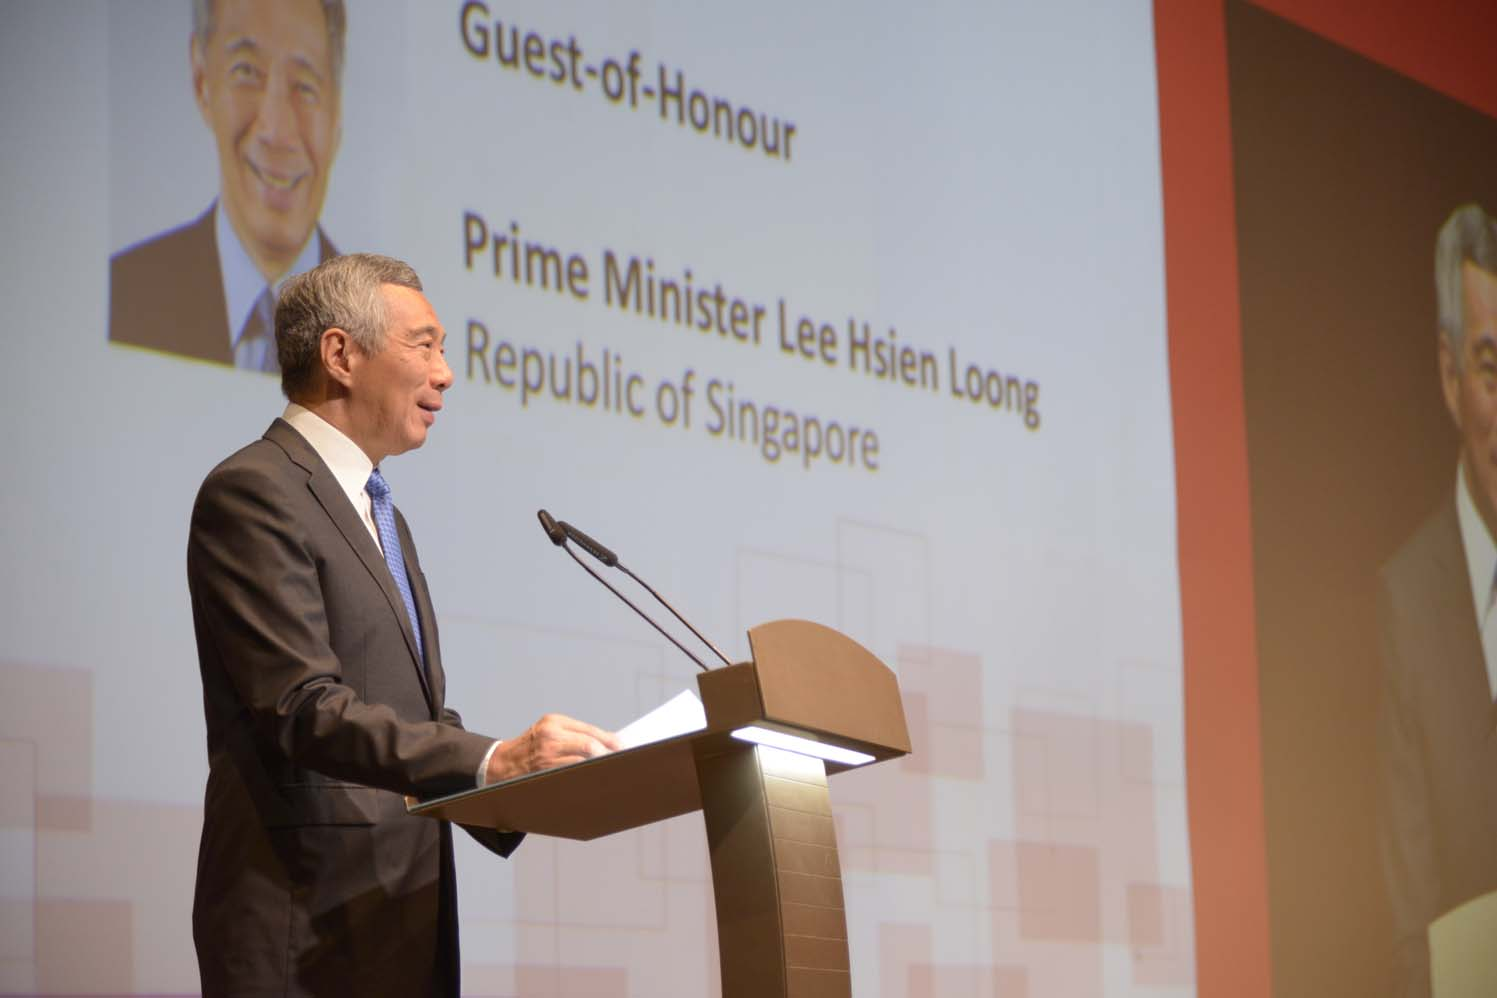 PM Lee Hsien Loong speaking at SICW 2016